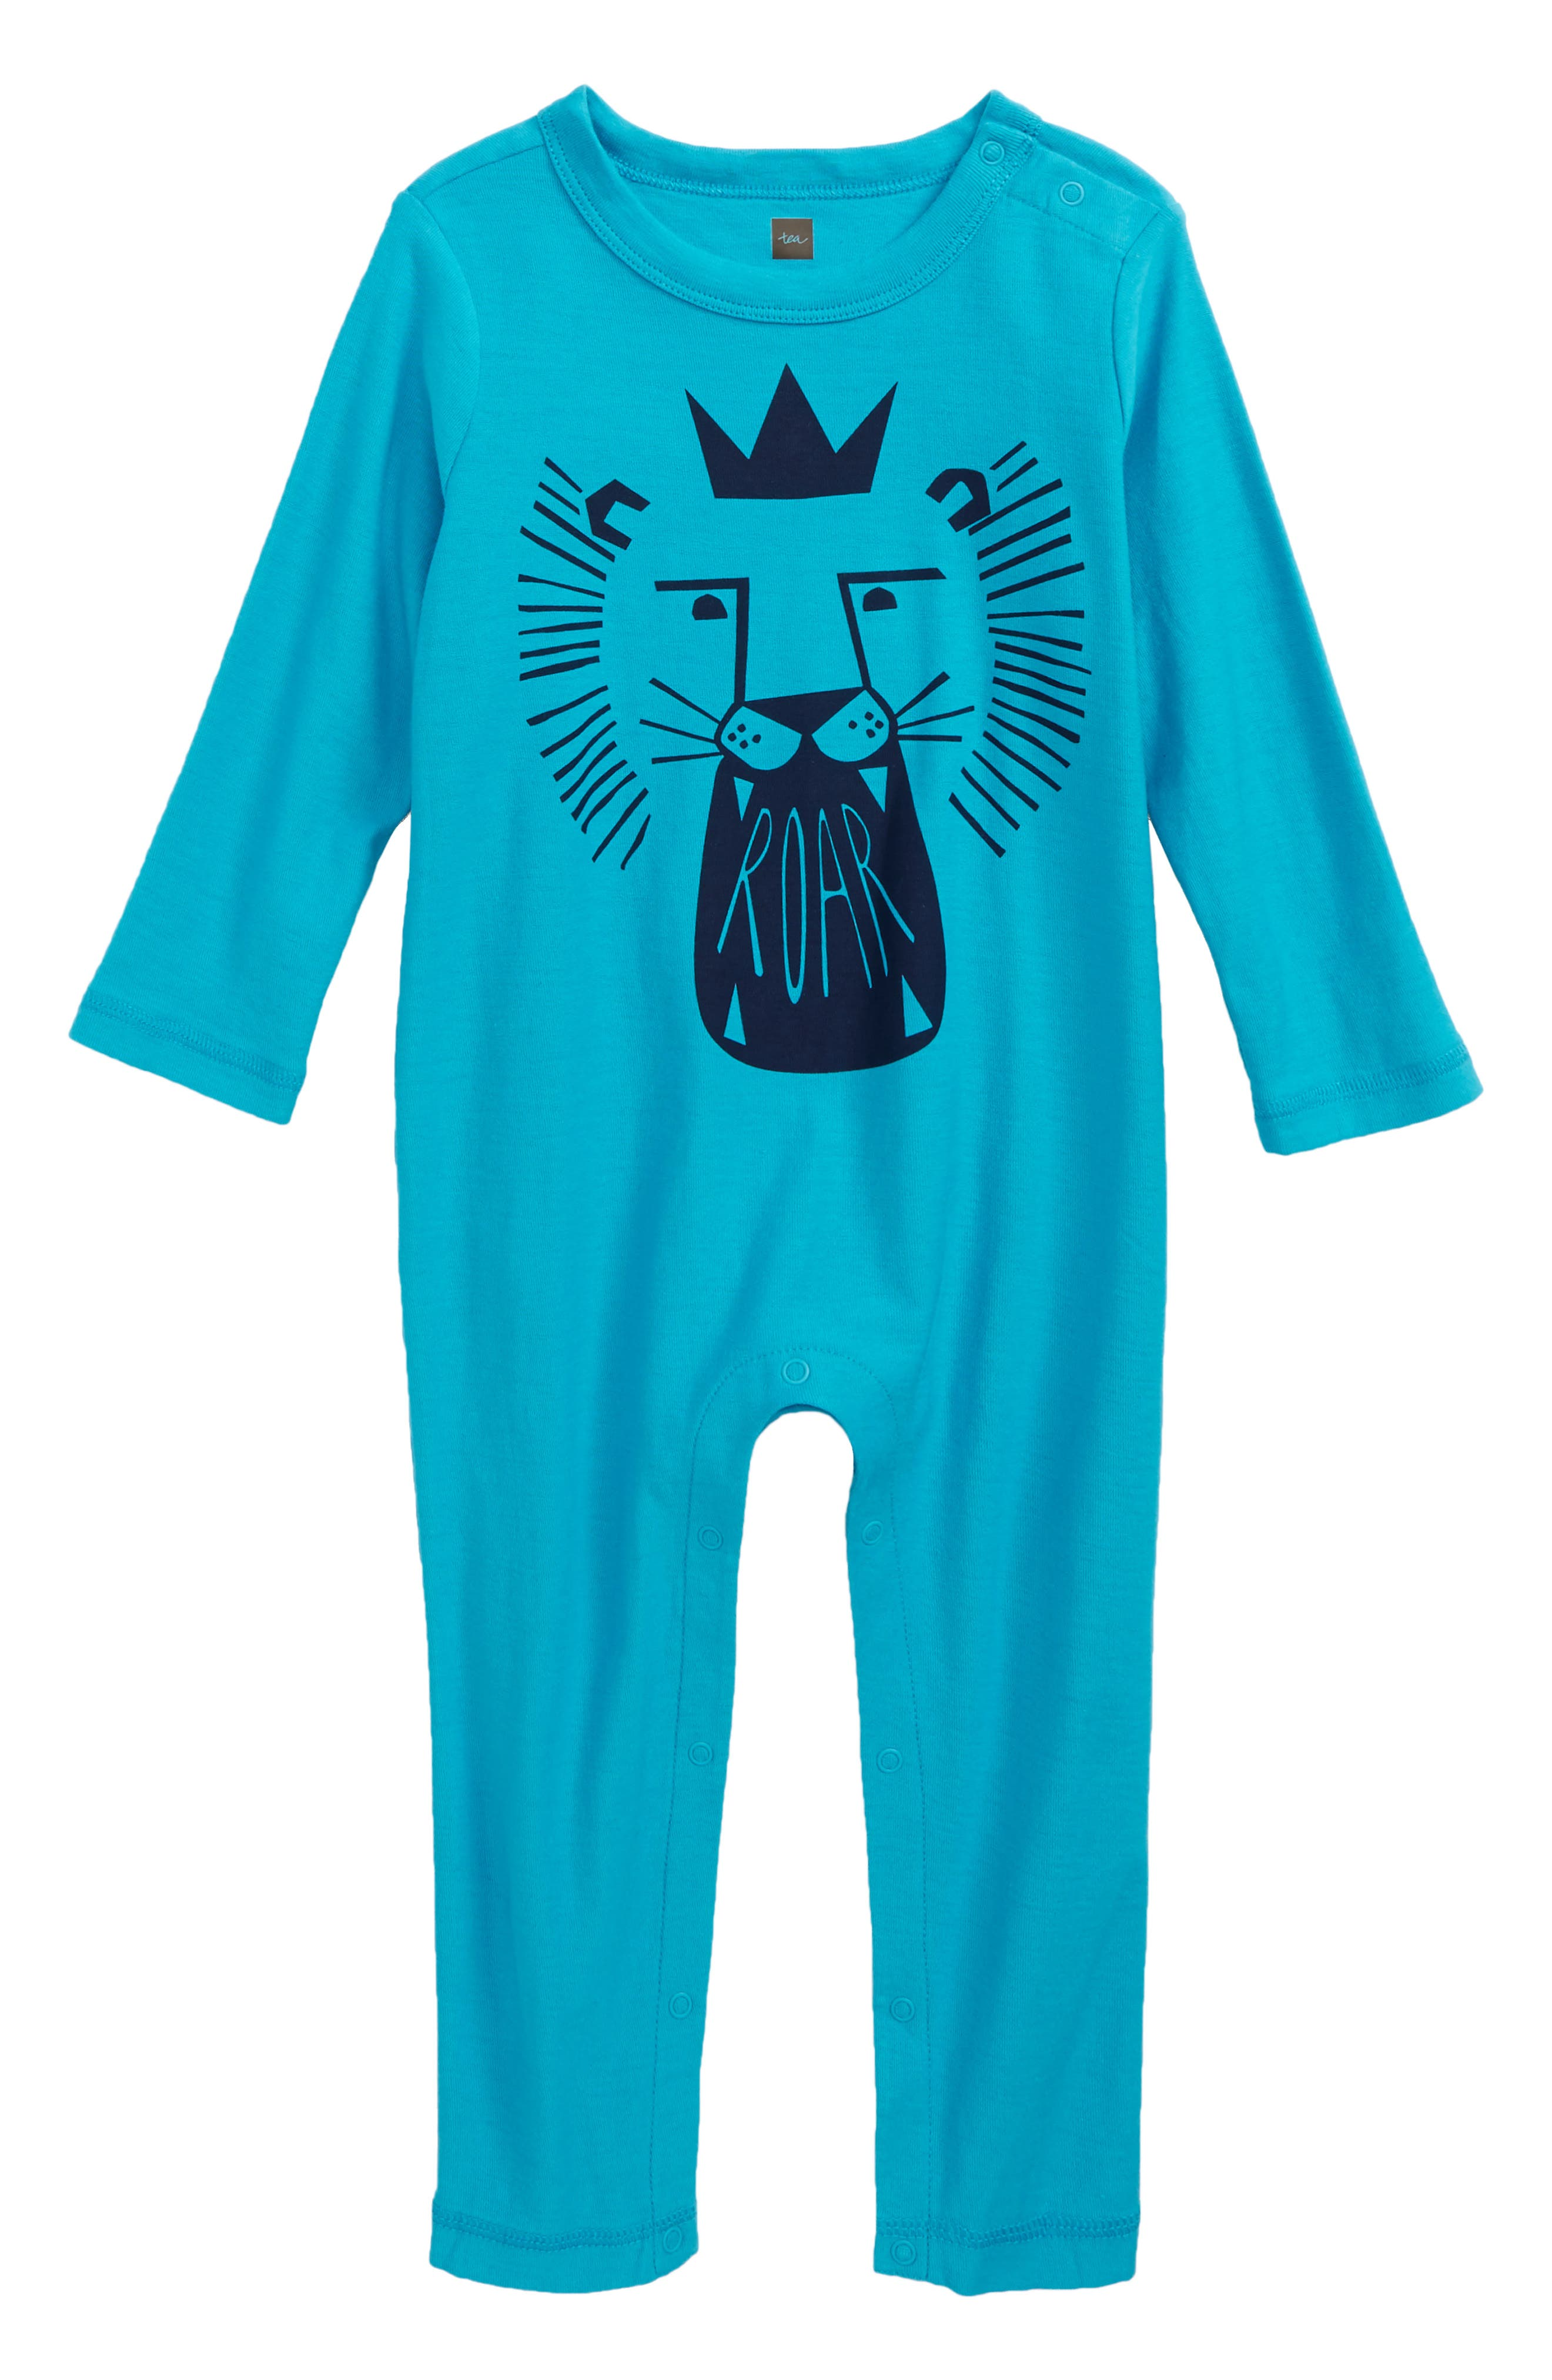 Alternate Image 1 Selected - Tea Collection MacDuff Graphic Romper (Baby Boys)